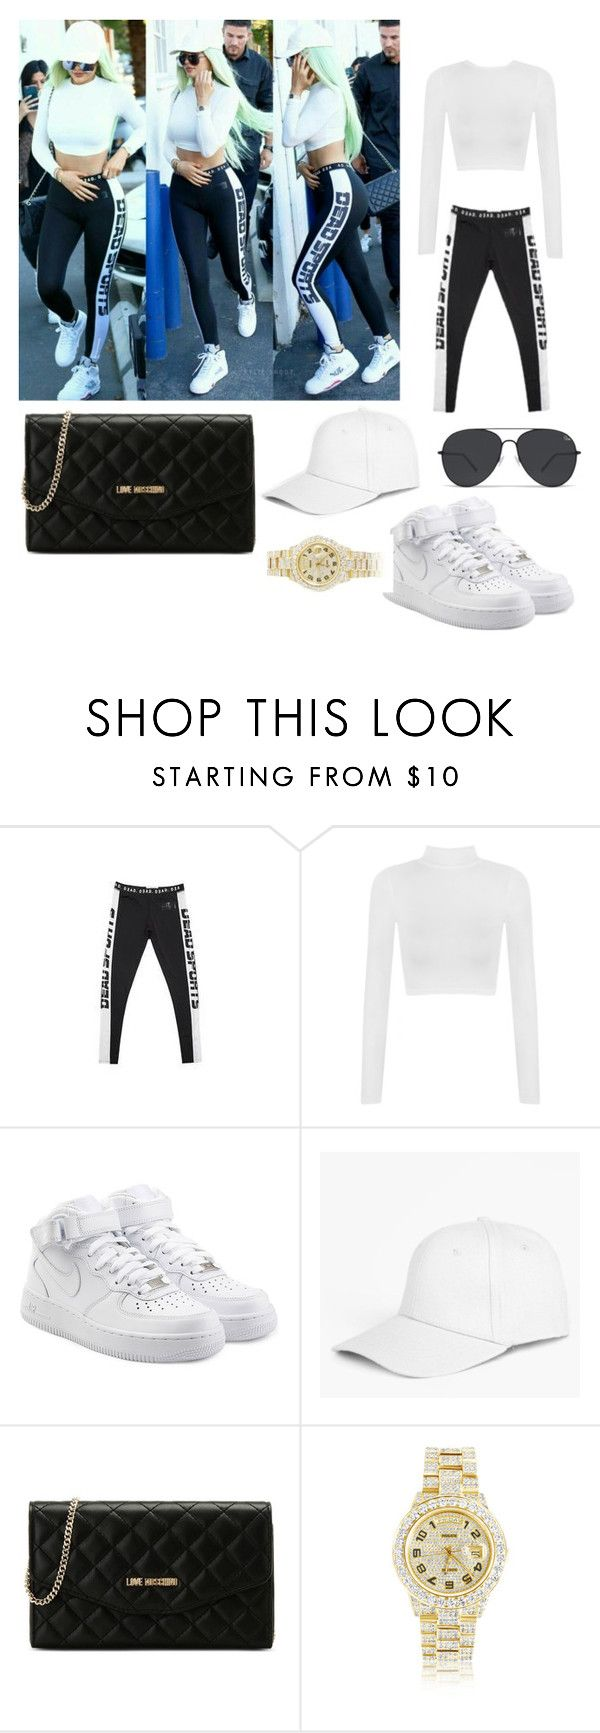 """Kylie Jenner street style, steal her style"" by simina650 ❤ liked on Polyvore featuring WearAll, NIKE, Boohoo, Love Moschino and Rolex"